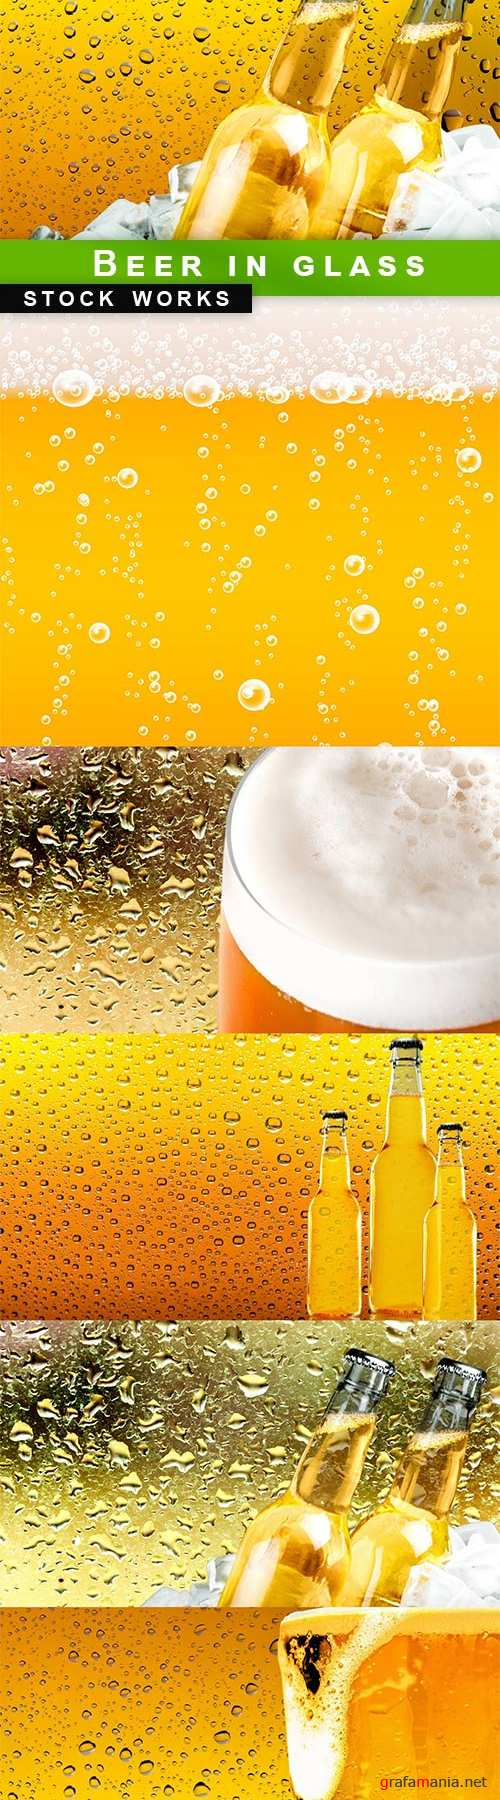 Beer in glass - 6 UHQ JPEG